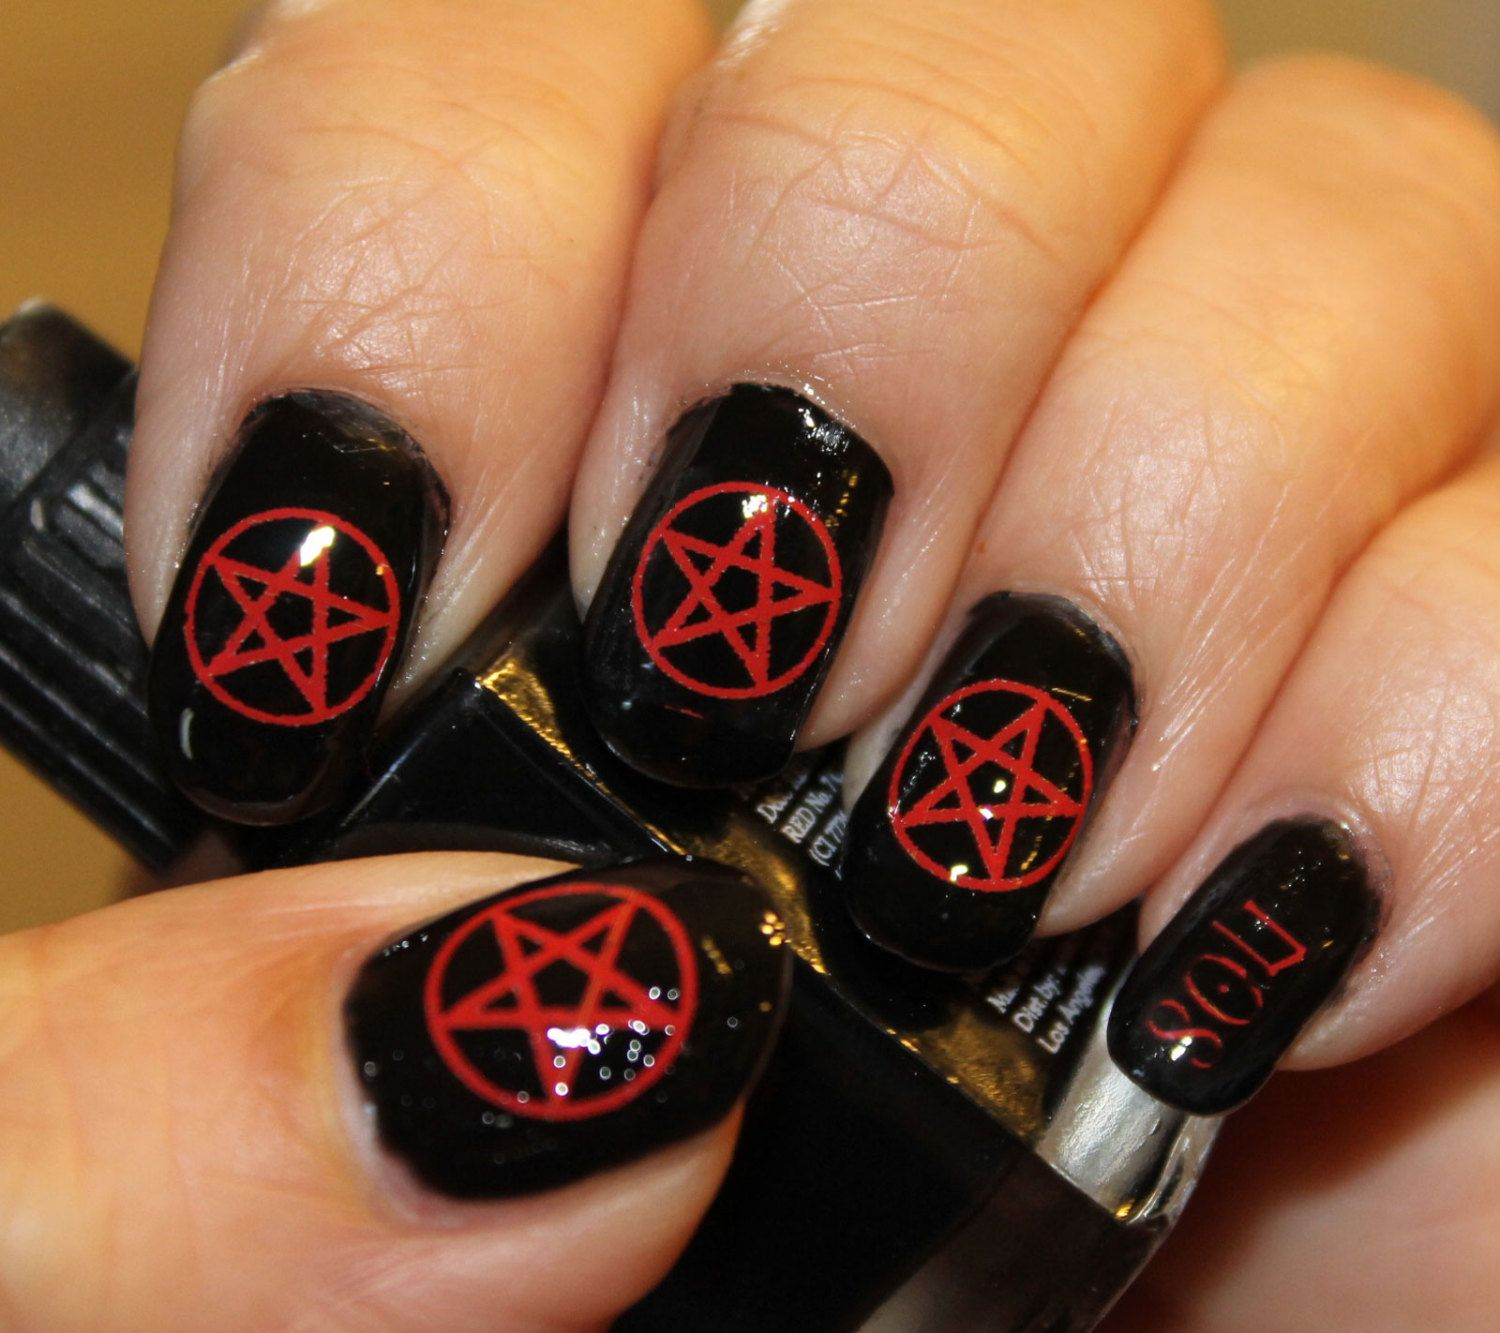 66 RED PENTACLE SYMBOLS Nail Art Opaque by NorthofSalem on Etsy - 66 RED PENTACLE SYMBOLS Nail Art Opaque By NorthofSalem On Etsy